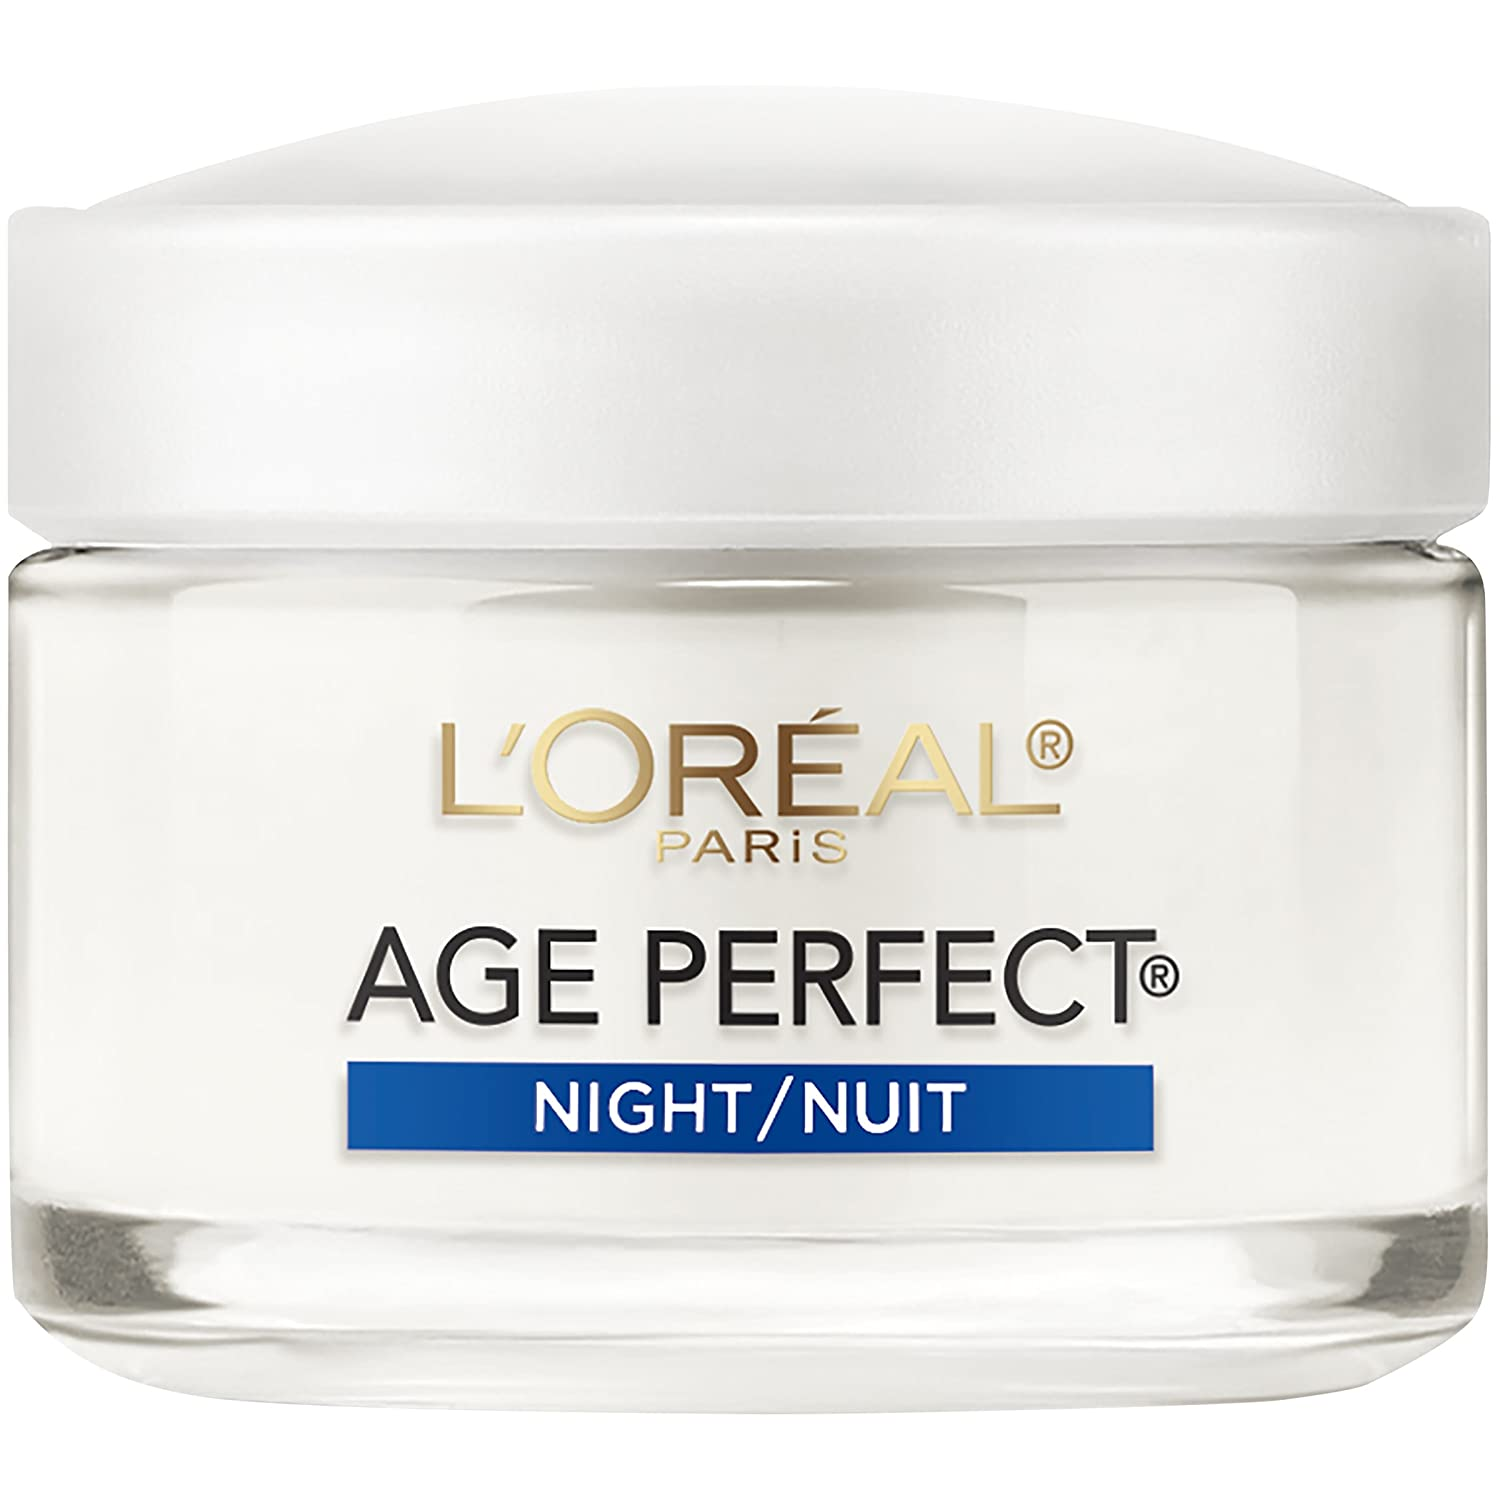 Age Perfect Anti-Age Spot Hydrating Moisturizer by L'Oreal Paris for Unisex - 2.5 oz Cream (Unboxed) L' Oreal CX